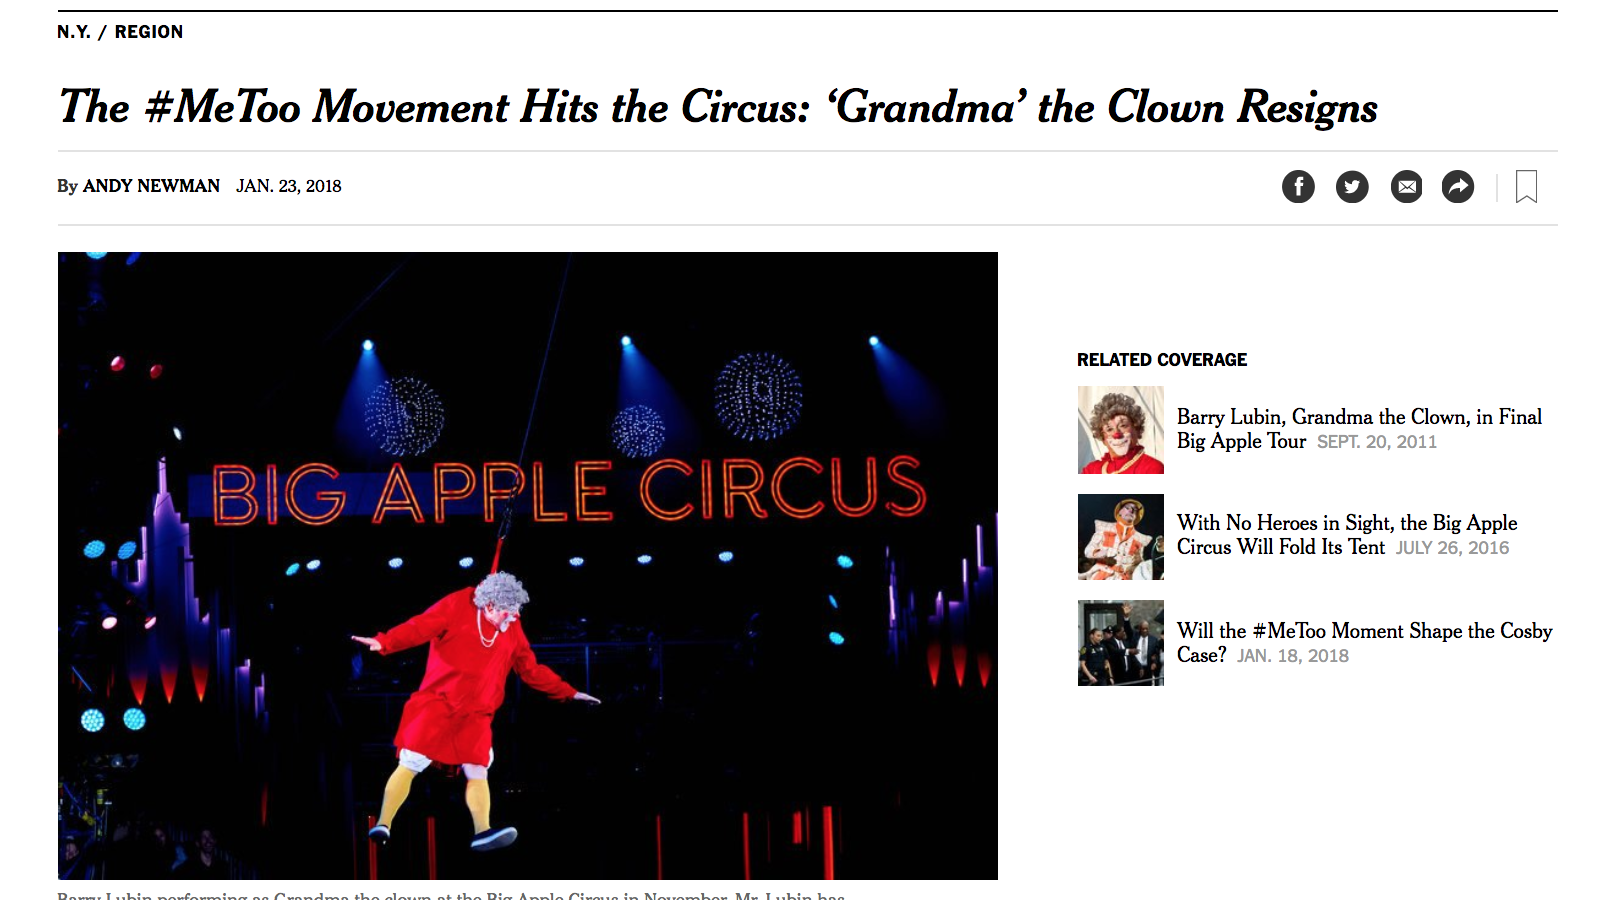 Grandma The Clown Resigns: NY Times article